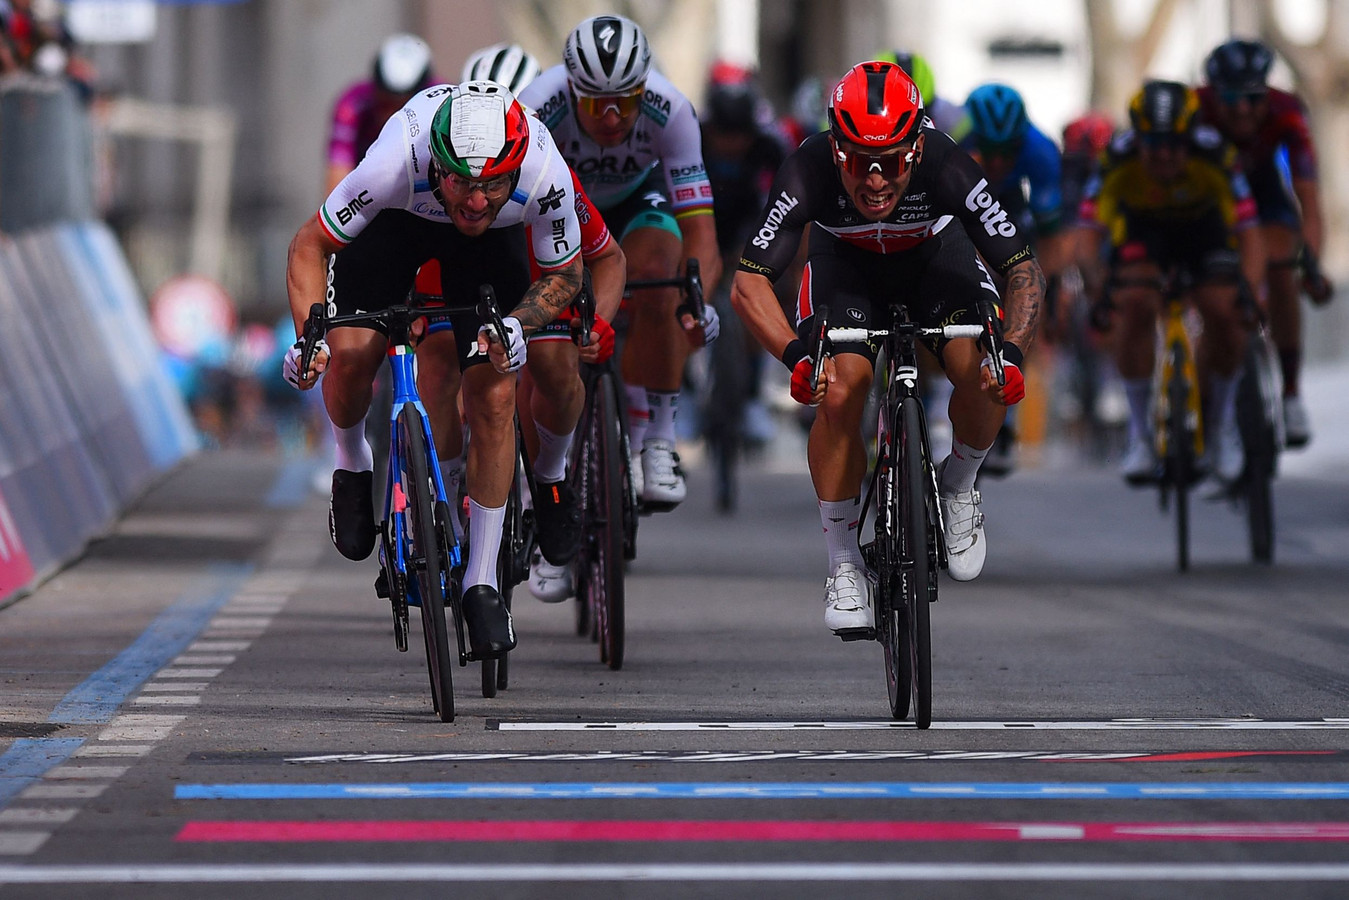 Team Lotto-Soudal rider Australia's Caleb Ewan (R) sprints with Team Qhubeka Assos rider Italy's Giacomo Nizzolo to win the fifth stage of the Giro d'Italia 2021 cycling race, 177 km between Modena and Cattolica, Emilia-Romagna, on May 12, 2021. (Photo by Dario BELINGHERI / AFP)